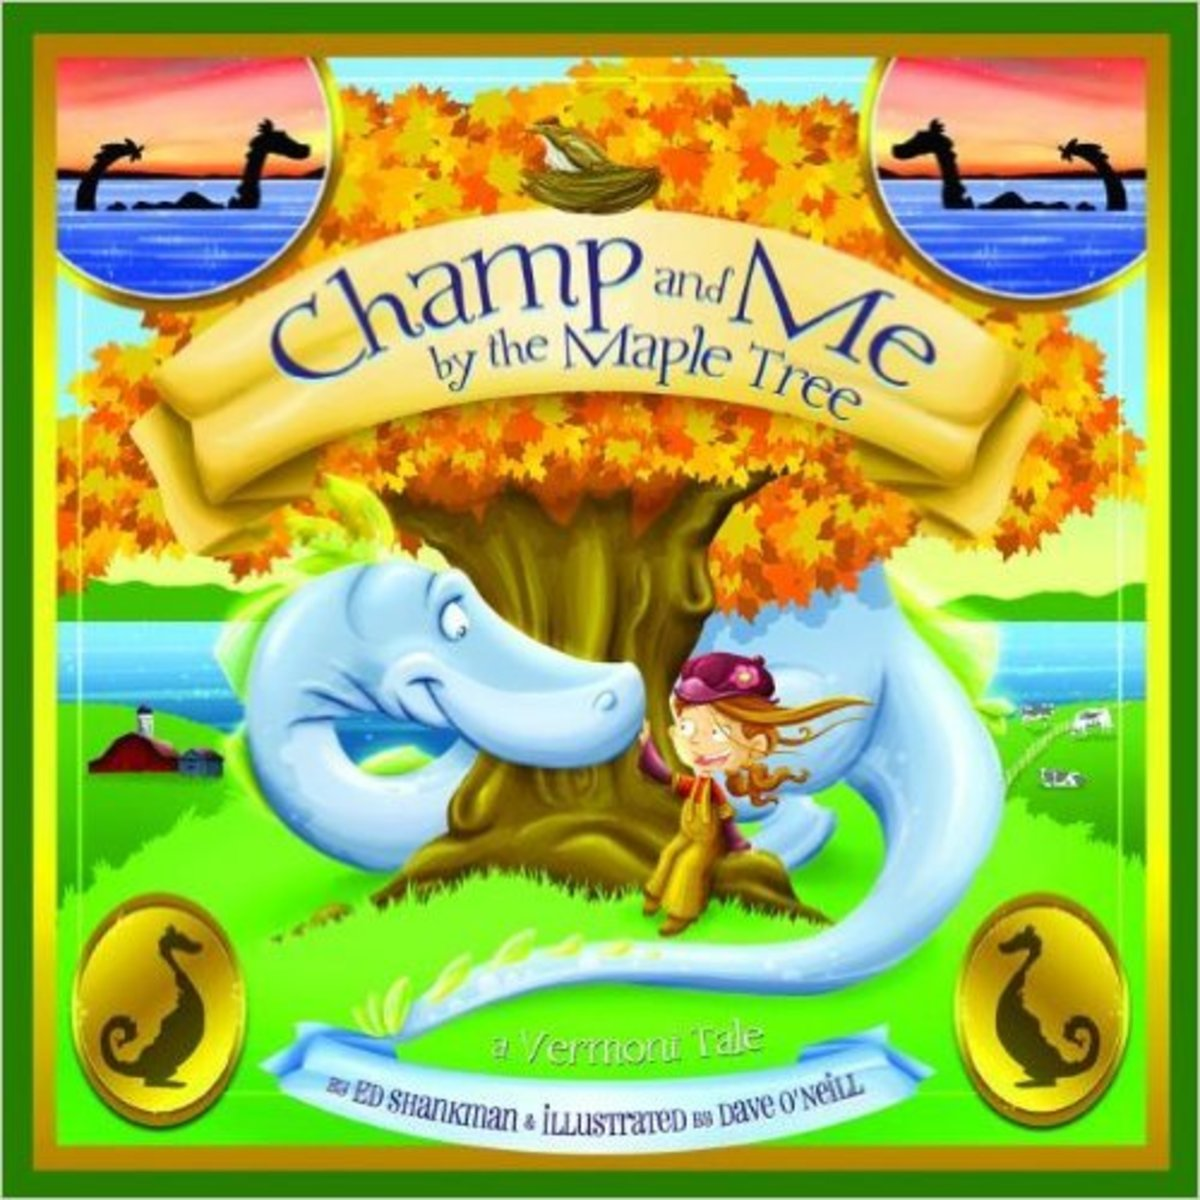 Champ and Me By the Maple Tree: A Vermont Tale (Shankman & O'Neill) by Ed Shankman